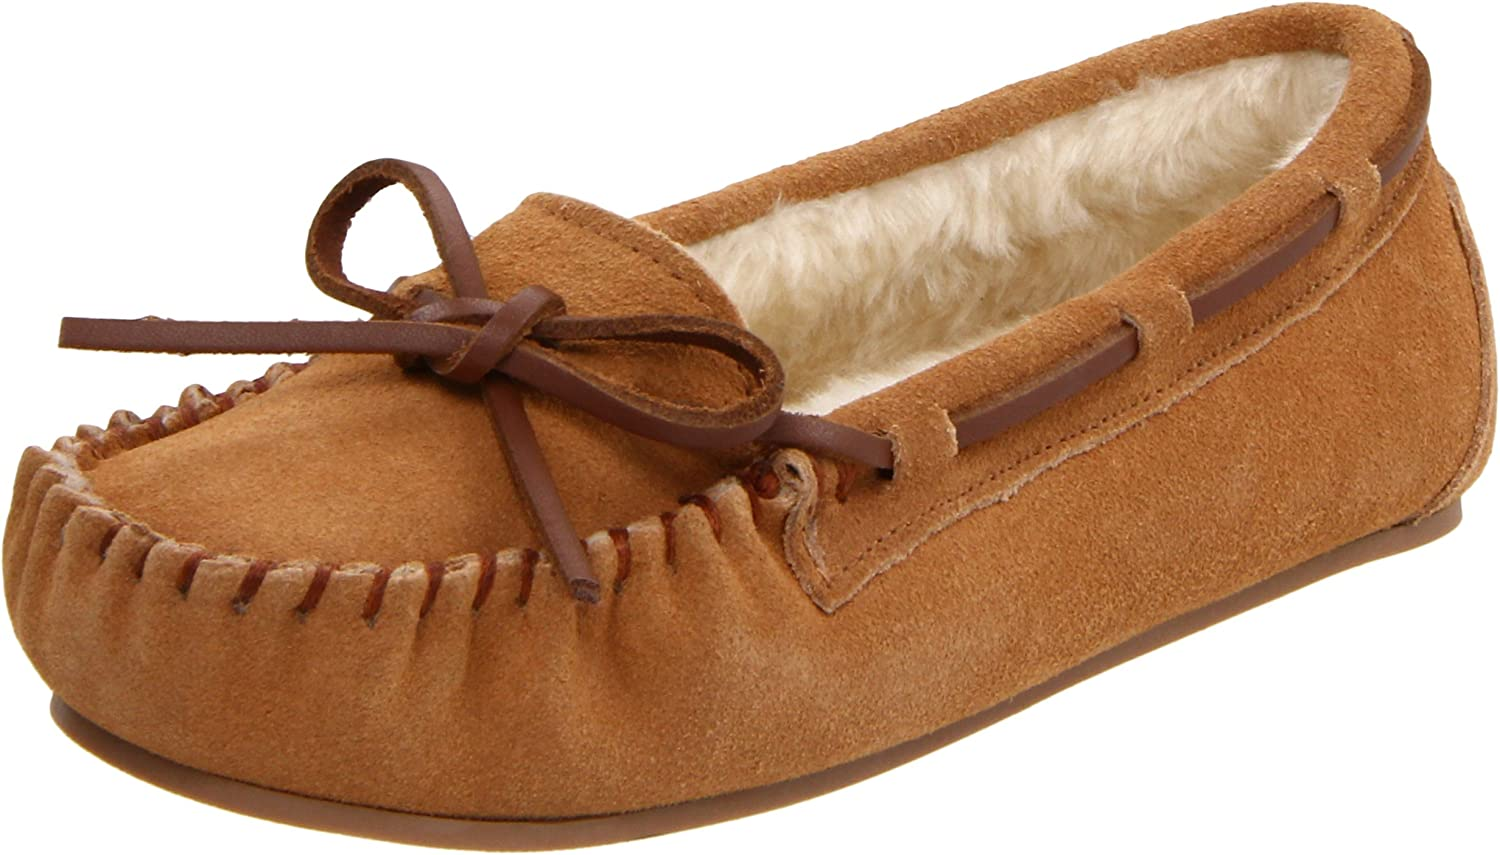 Tamarac by Slippers International Women's Low Molly Faux Slipper Blitz